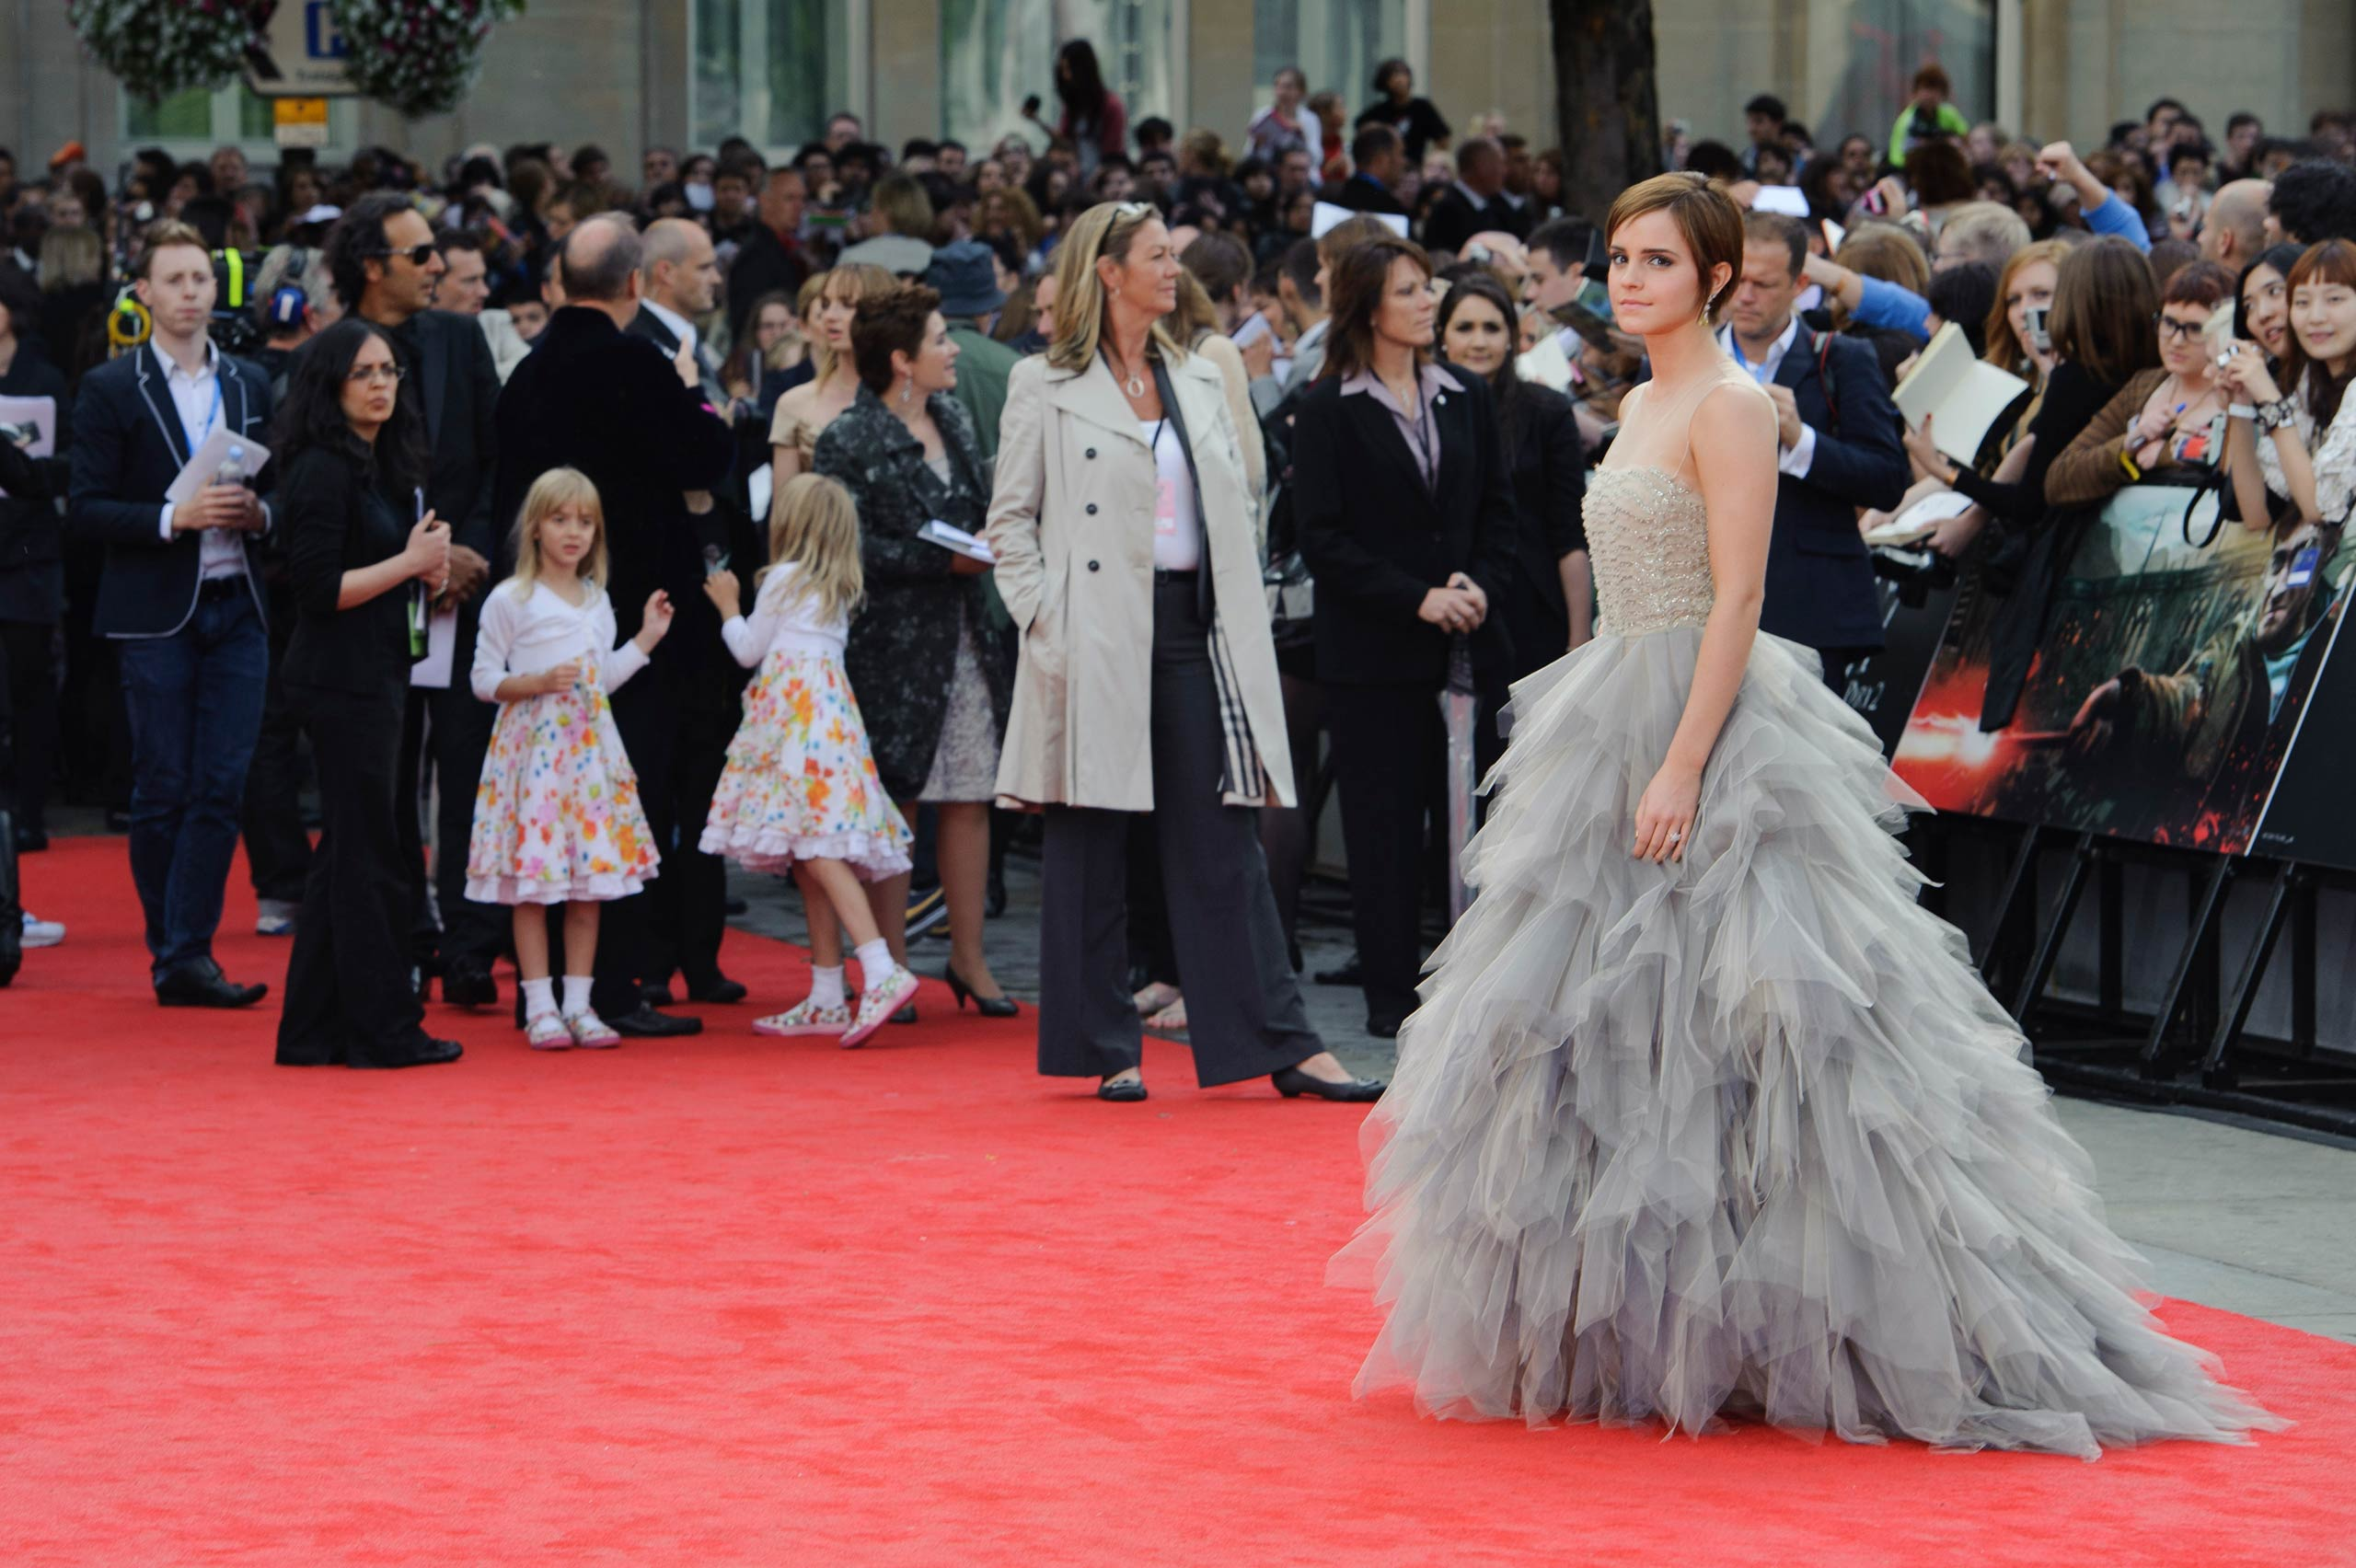 Emma Watson arrives in Trafalgar Square, London, for the world premiere of <i>Harry Potter and The Deathly Hallows: Part 2</i> in 2011.